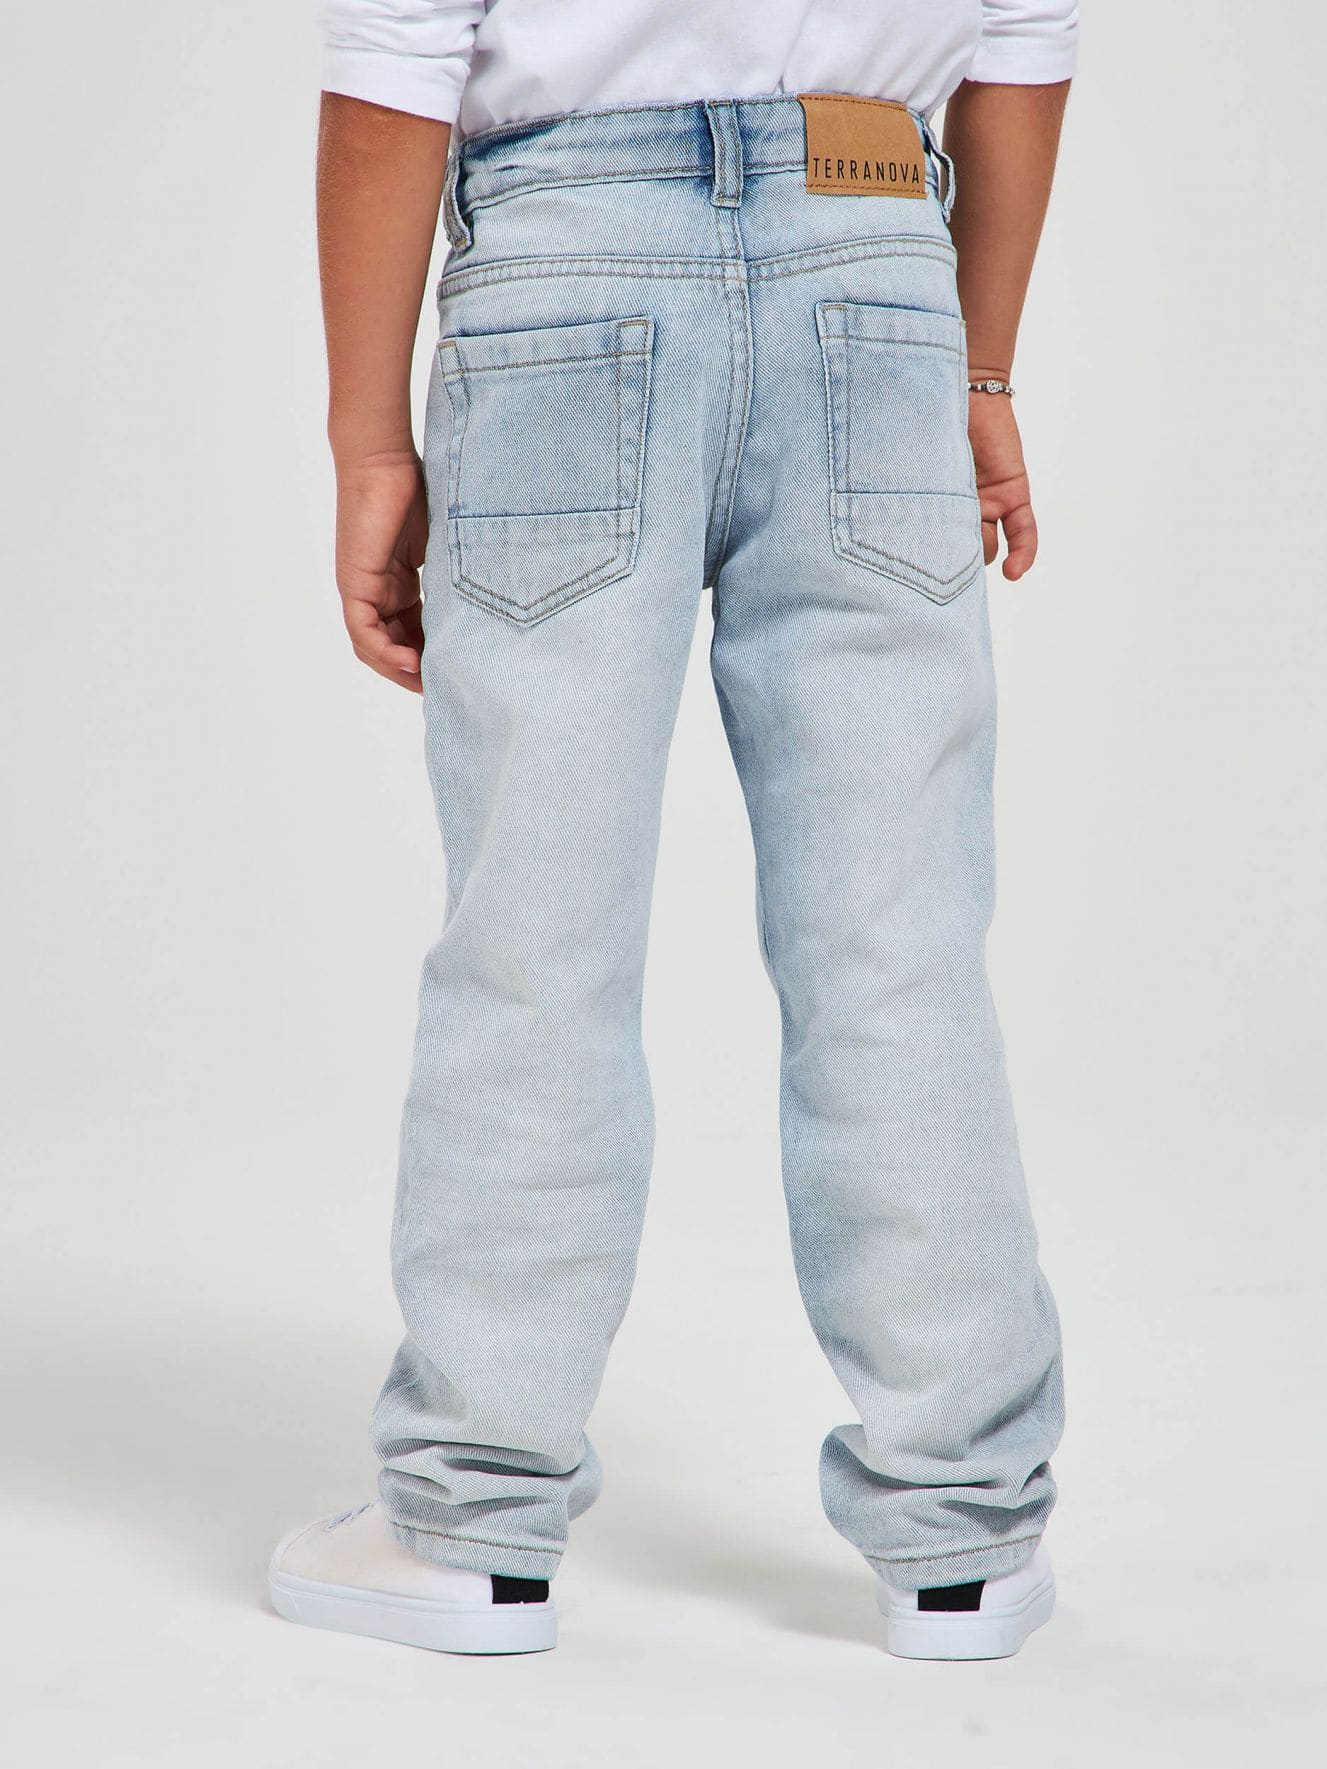 Long pants jeans Boys Terranova